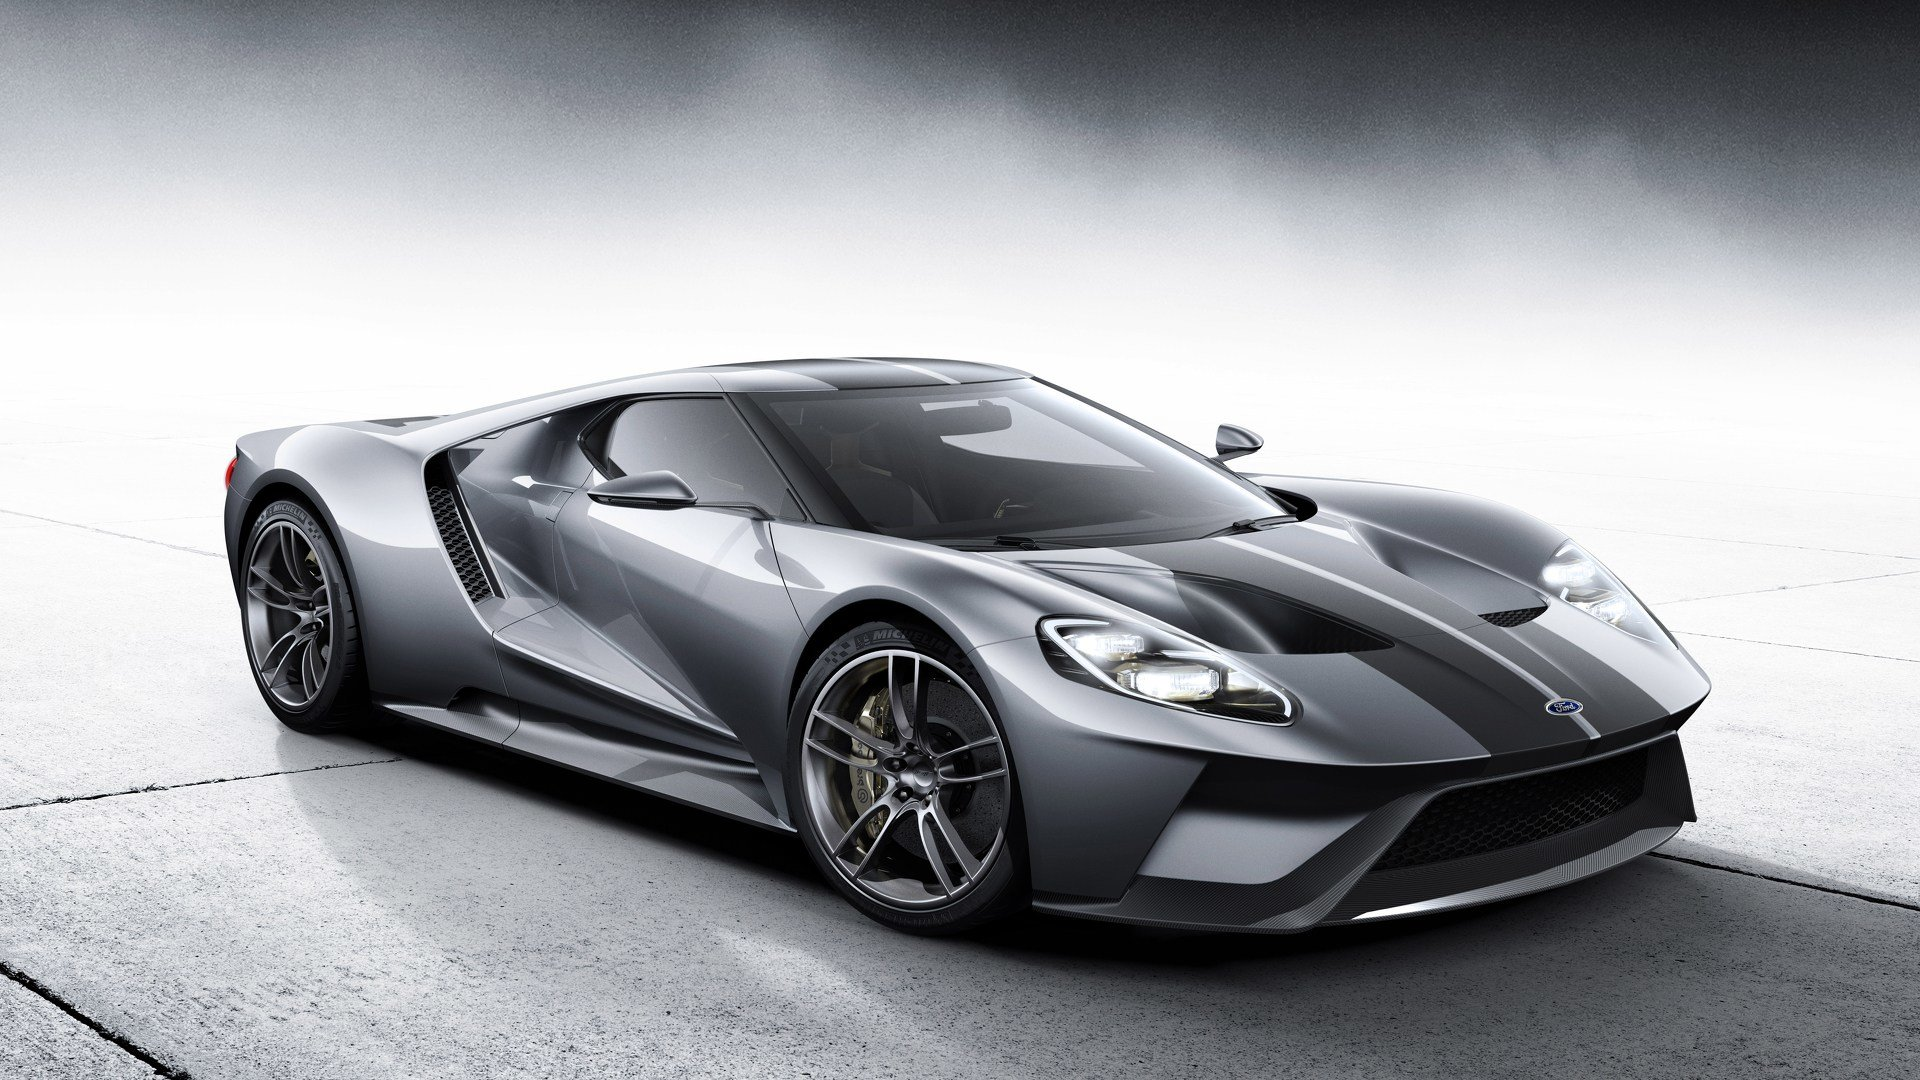 Latest Ford Gt News And Reviews Motor1 Com Free Download